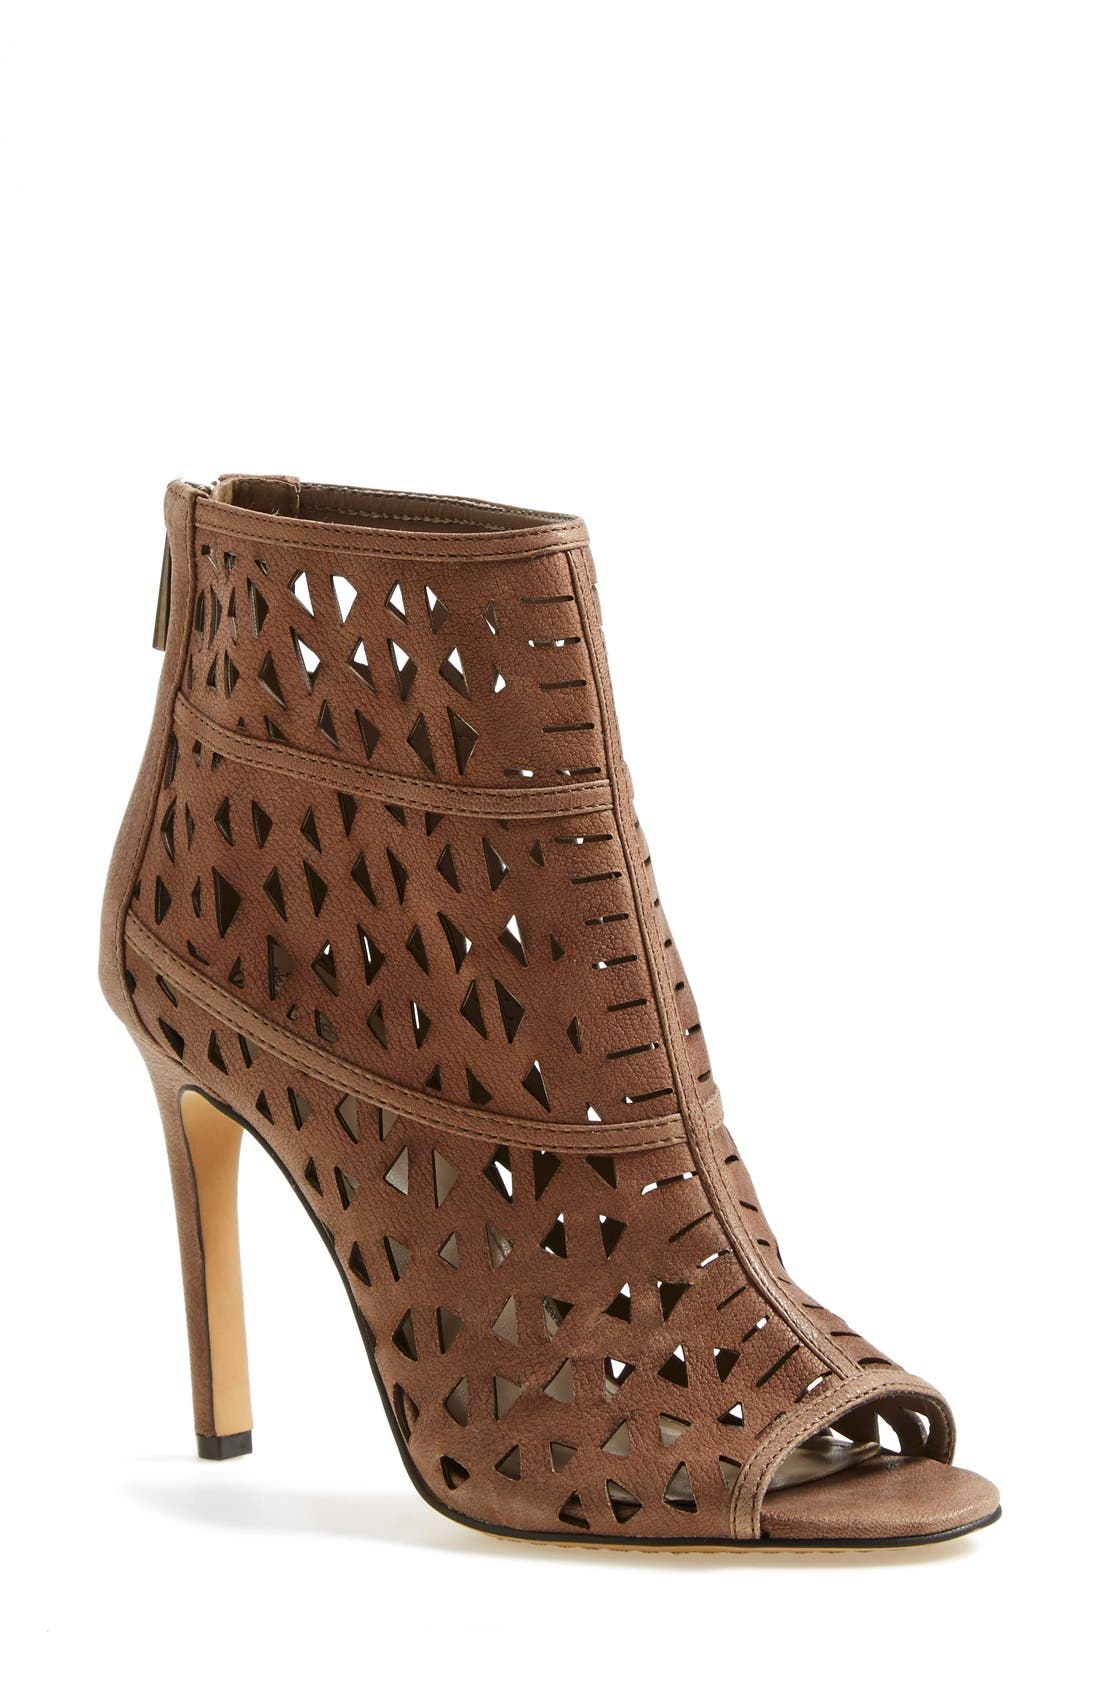 Alternate Image 1 Selected - Vince Camuto 'Kachina' Open Toe Bootie (Women) (Nordstrom Exclusive)